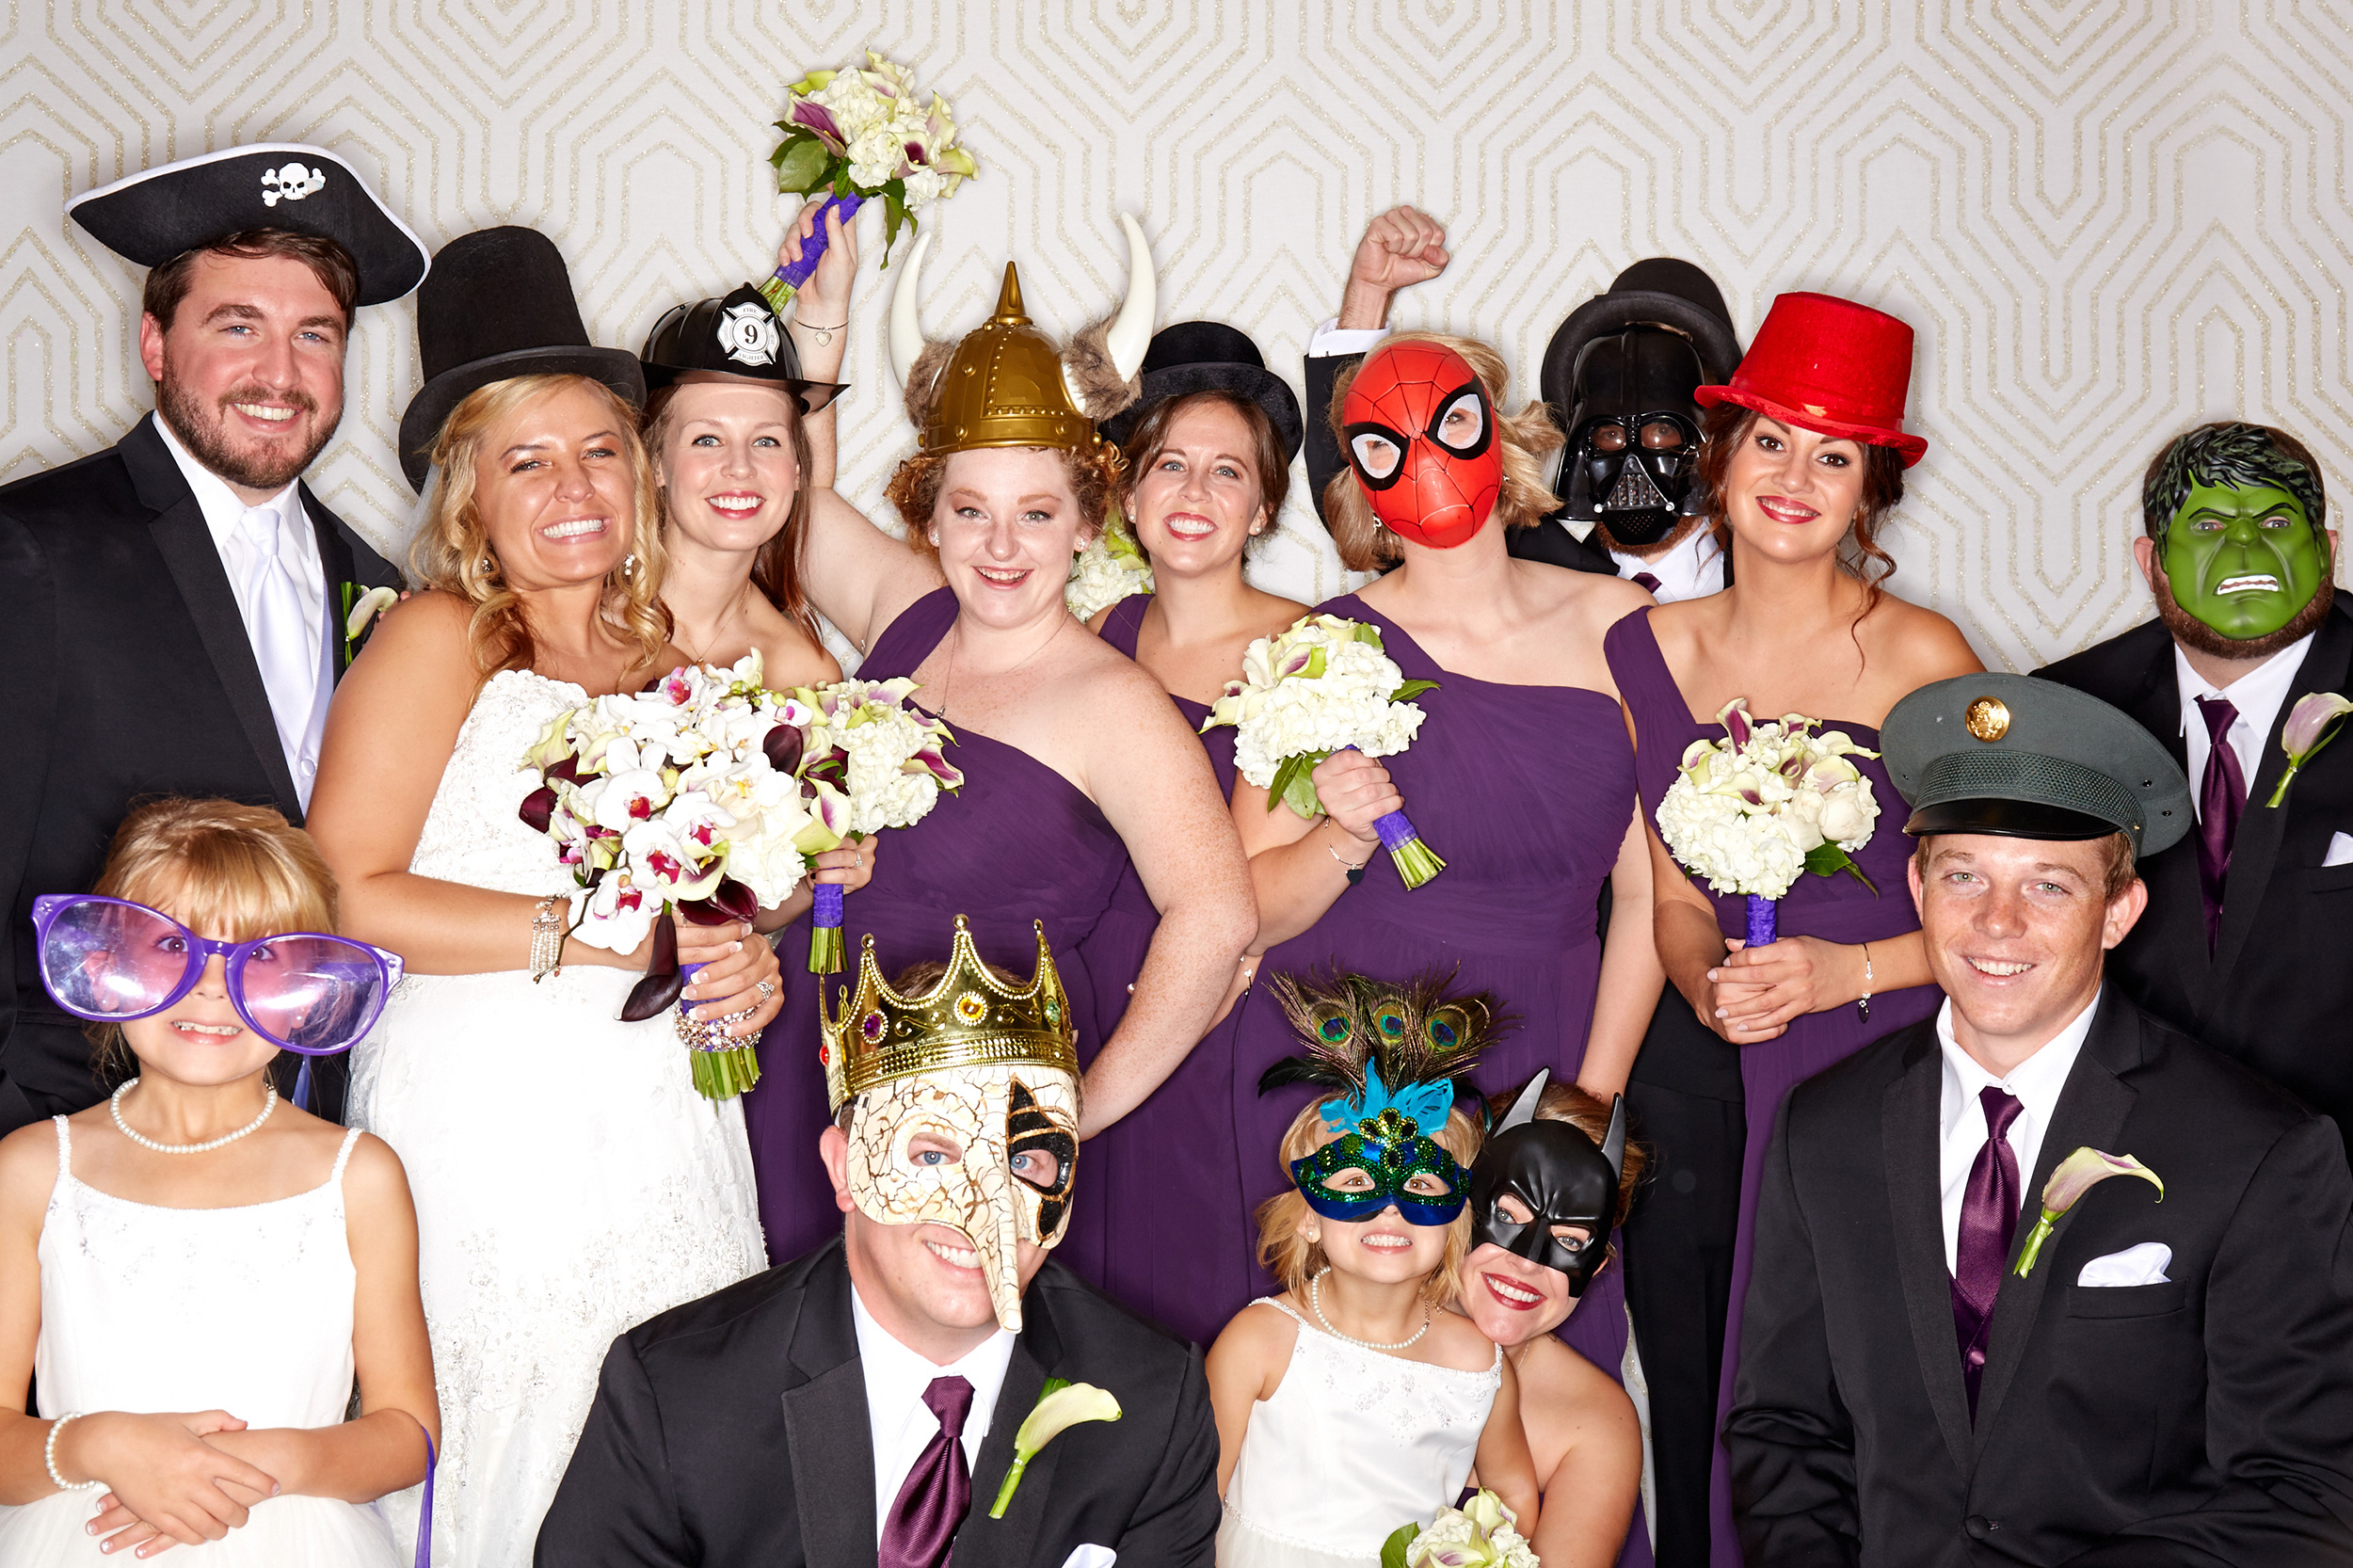 louisville-photo-booth-108.jpg